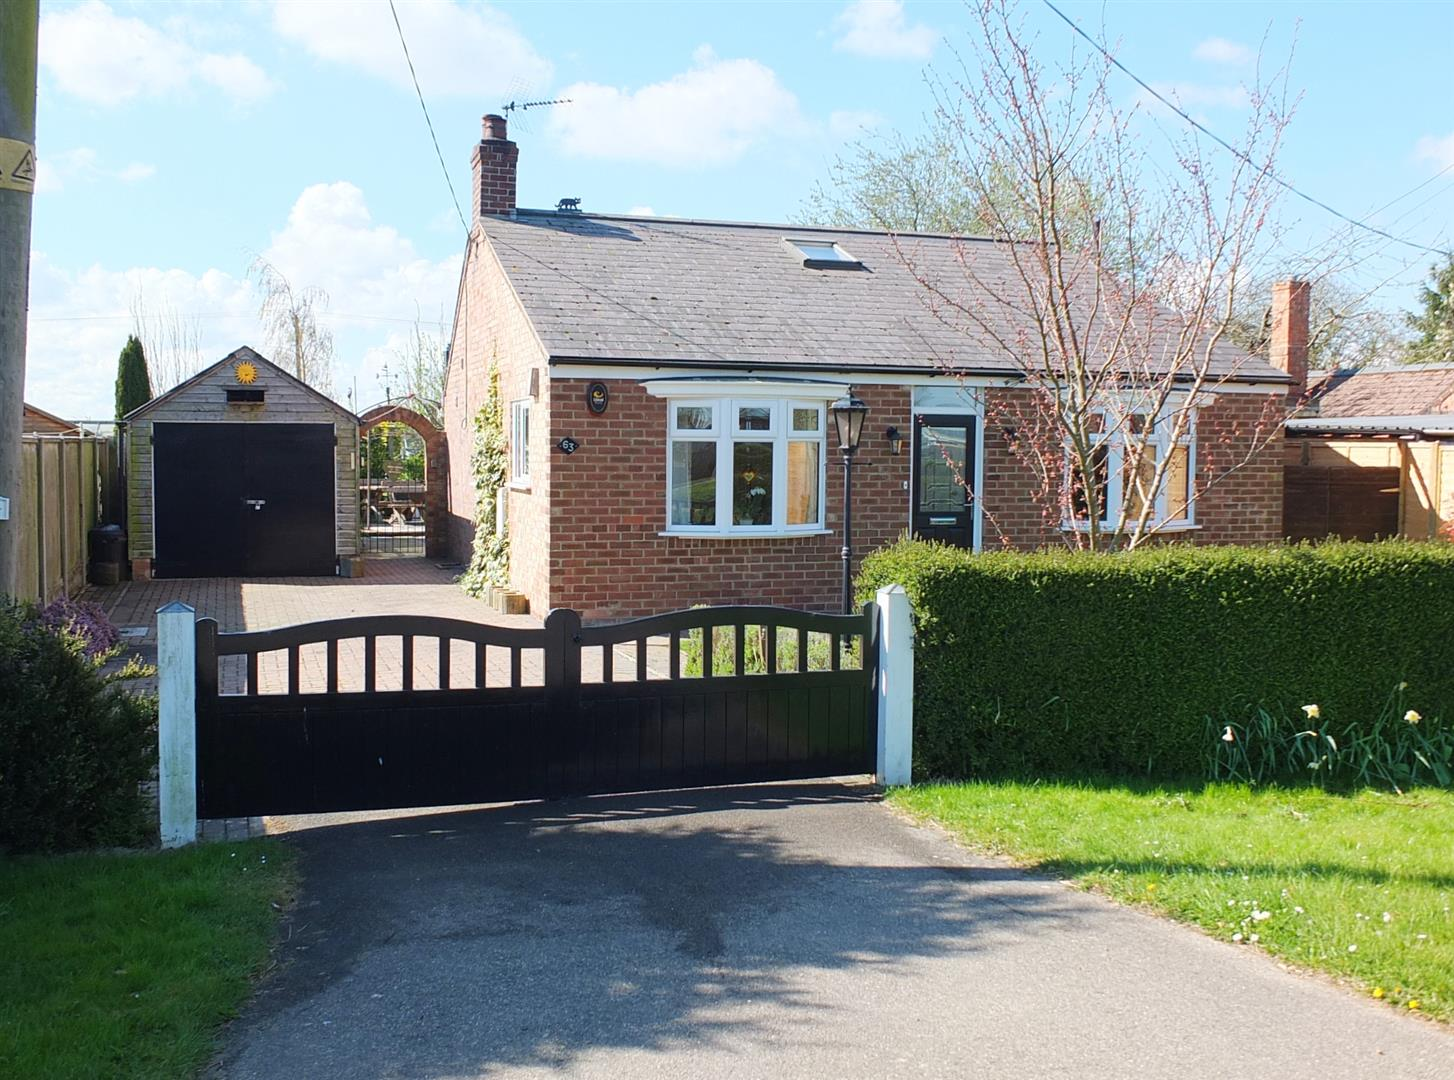 2 bed detached bungalow for sale in Long Sutton Spalding, PE12 9JT, PE12